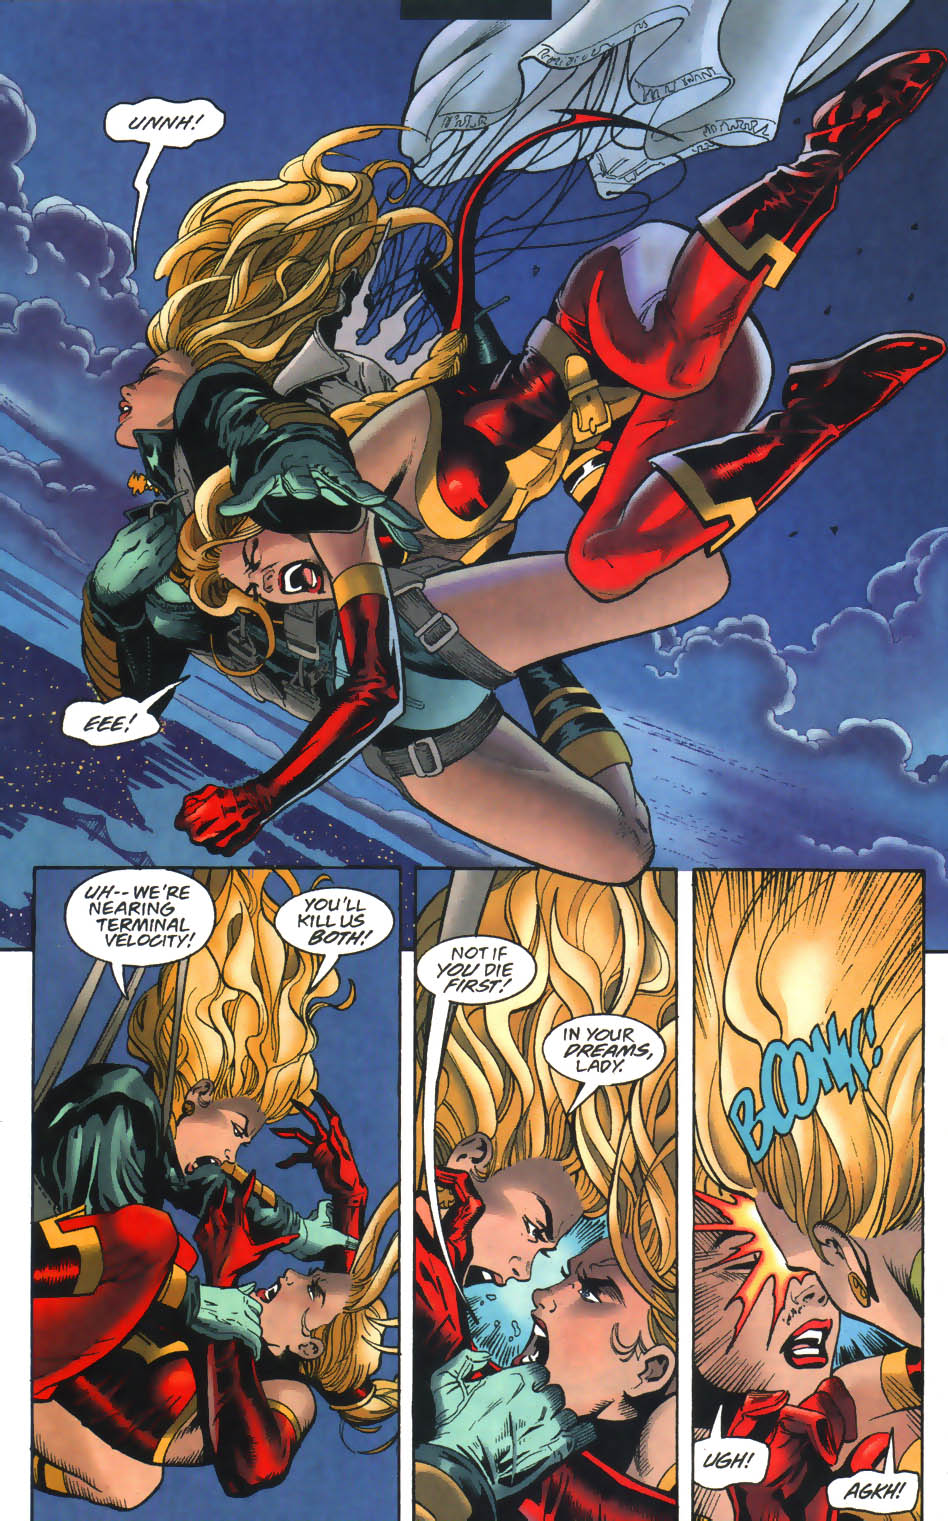 Nightwing 46 pg14 Lady Vic Black Canary.jpg